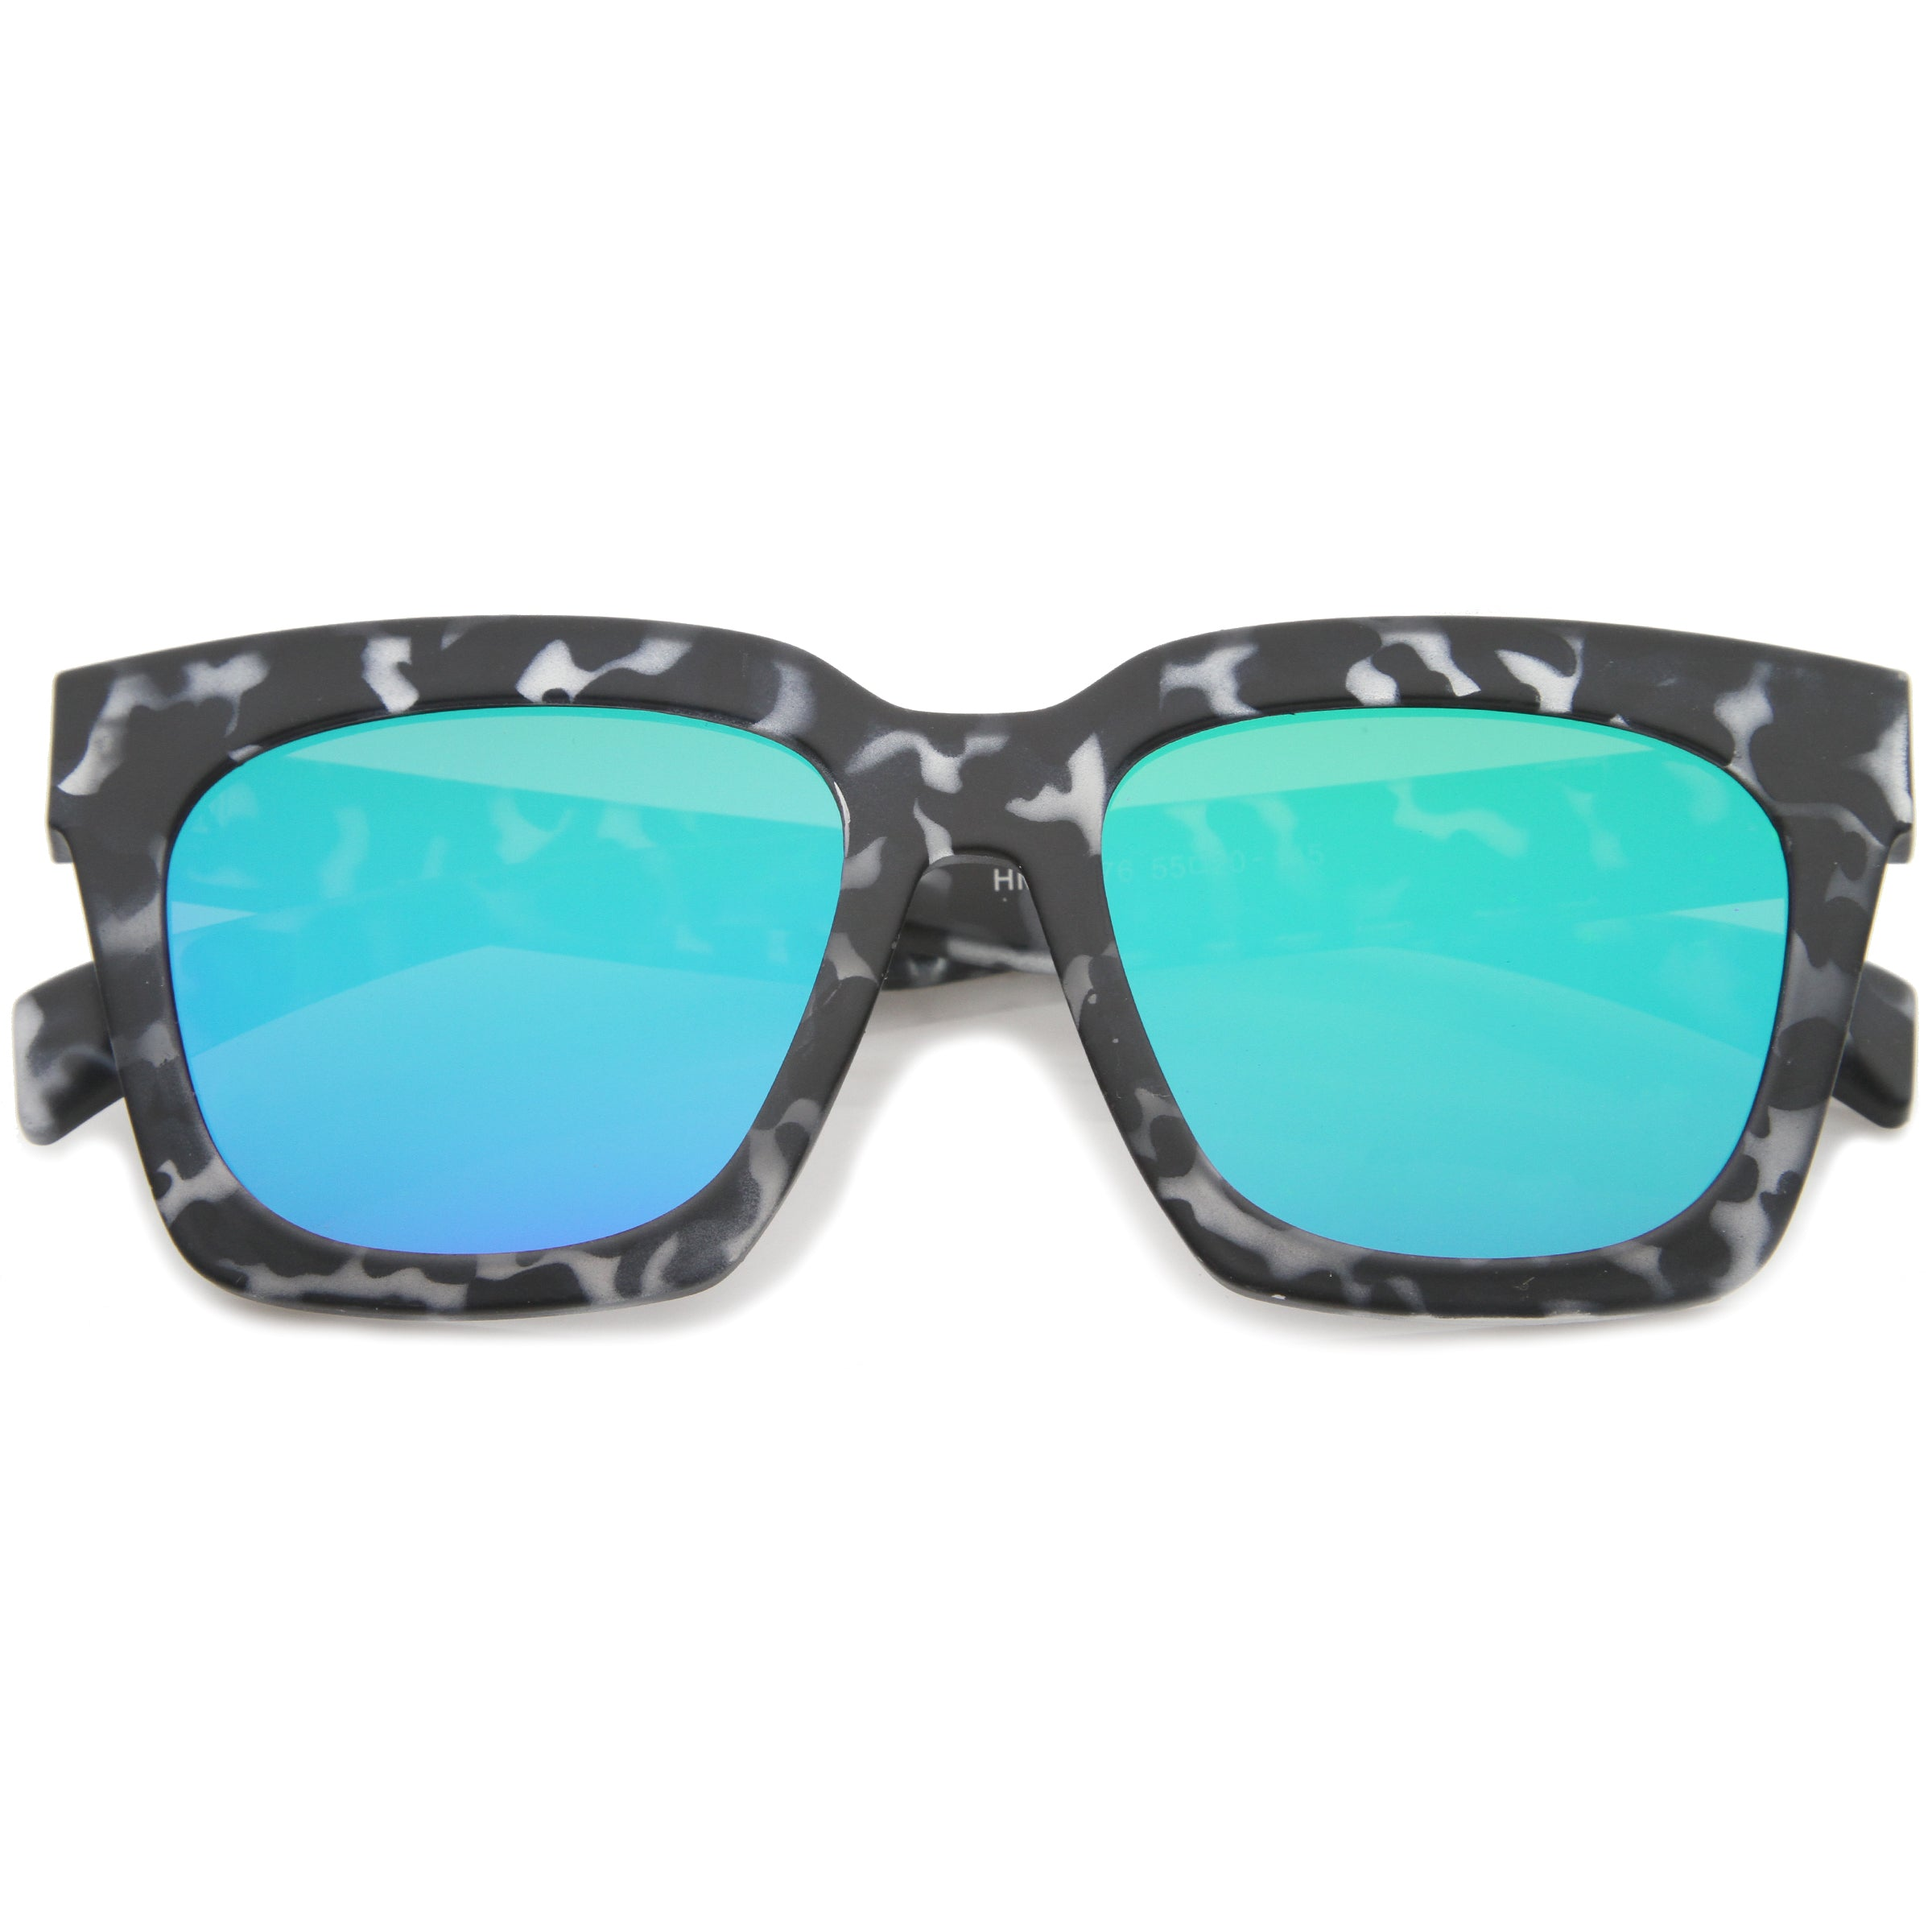 Retro Matte Horn Rimmed Colored Mirror Flat Lens Oversize Square Sunglasses 54mm - sunglass.la - 5